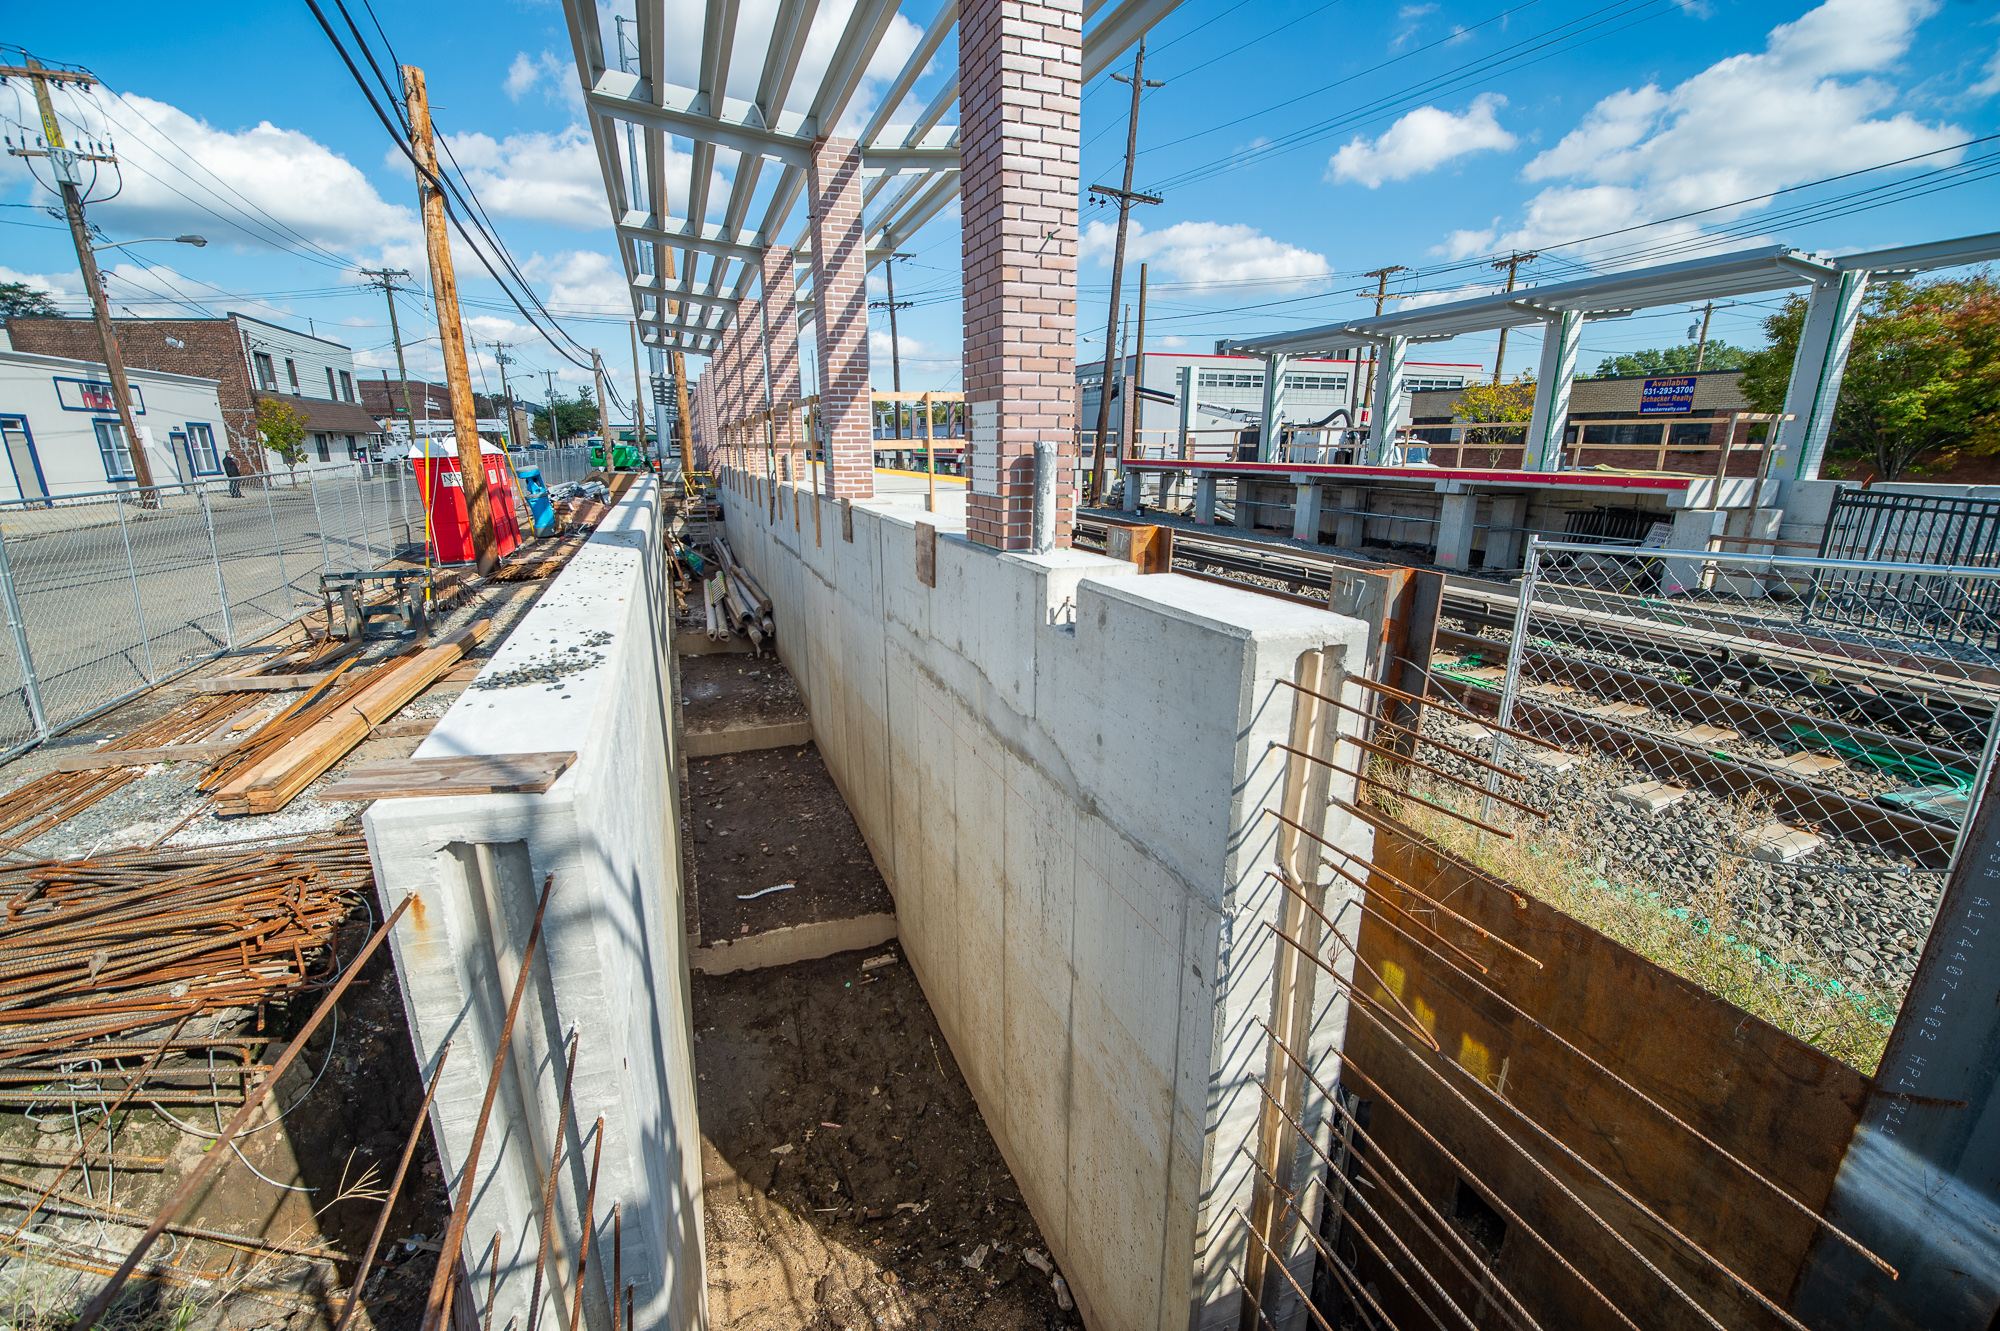 Entrance to the future S. 12th Street pedestrian underpass under construction - 10-22-20